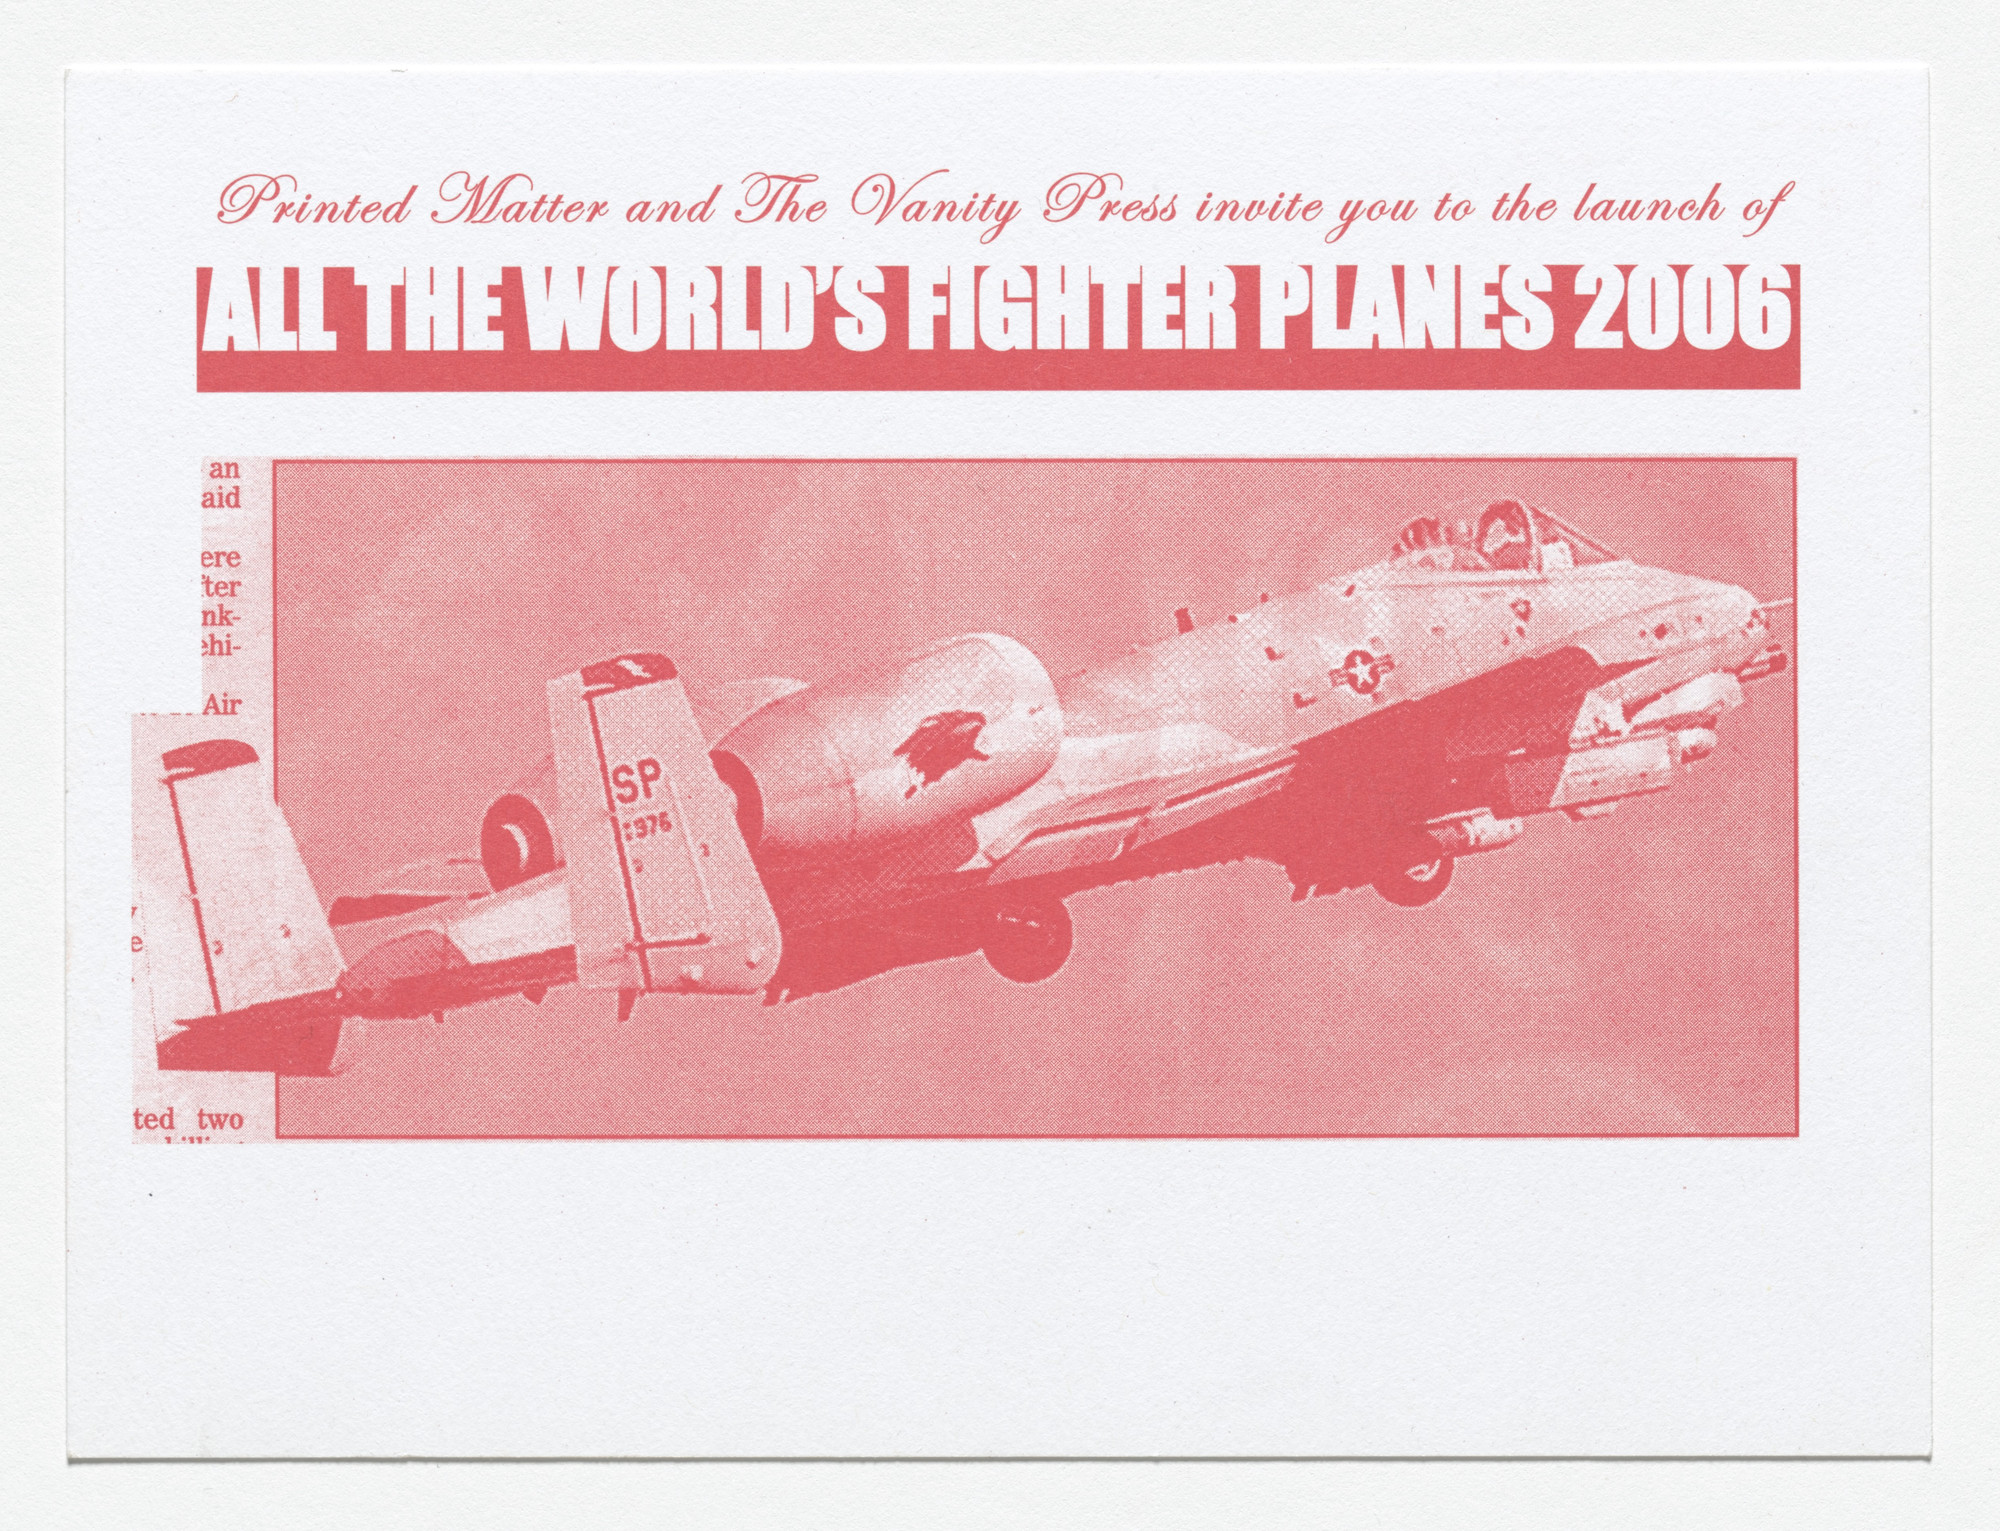 Fiona Banner. All the World's Fighter Planes Invite, Printed Matter. 2006